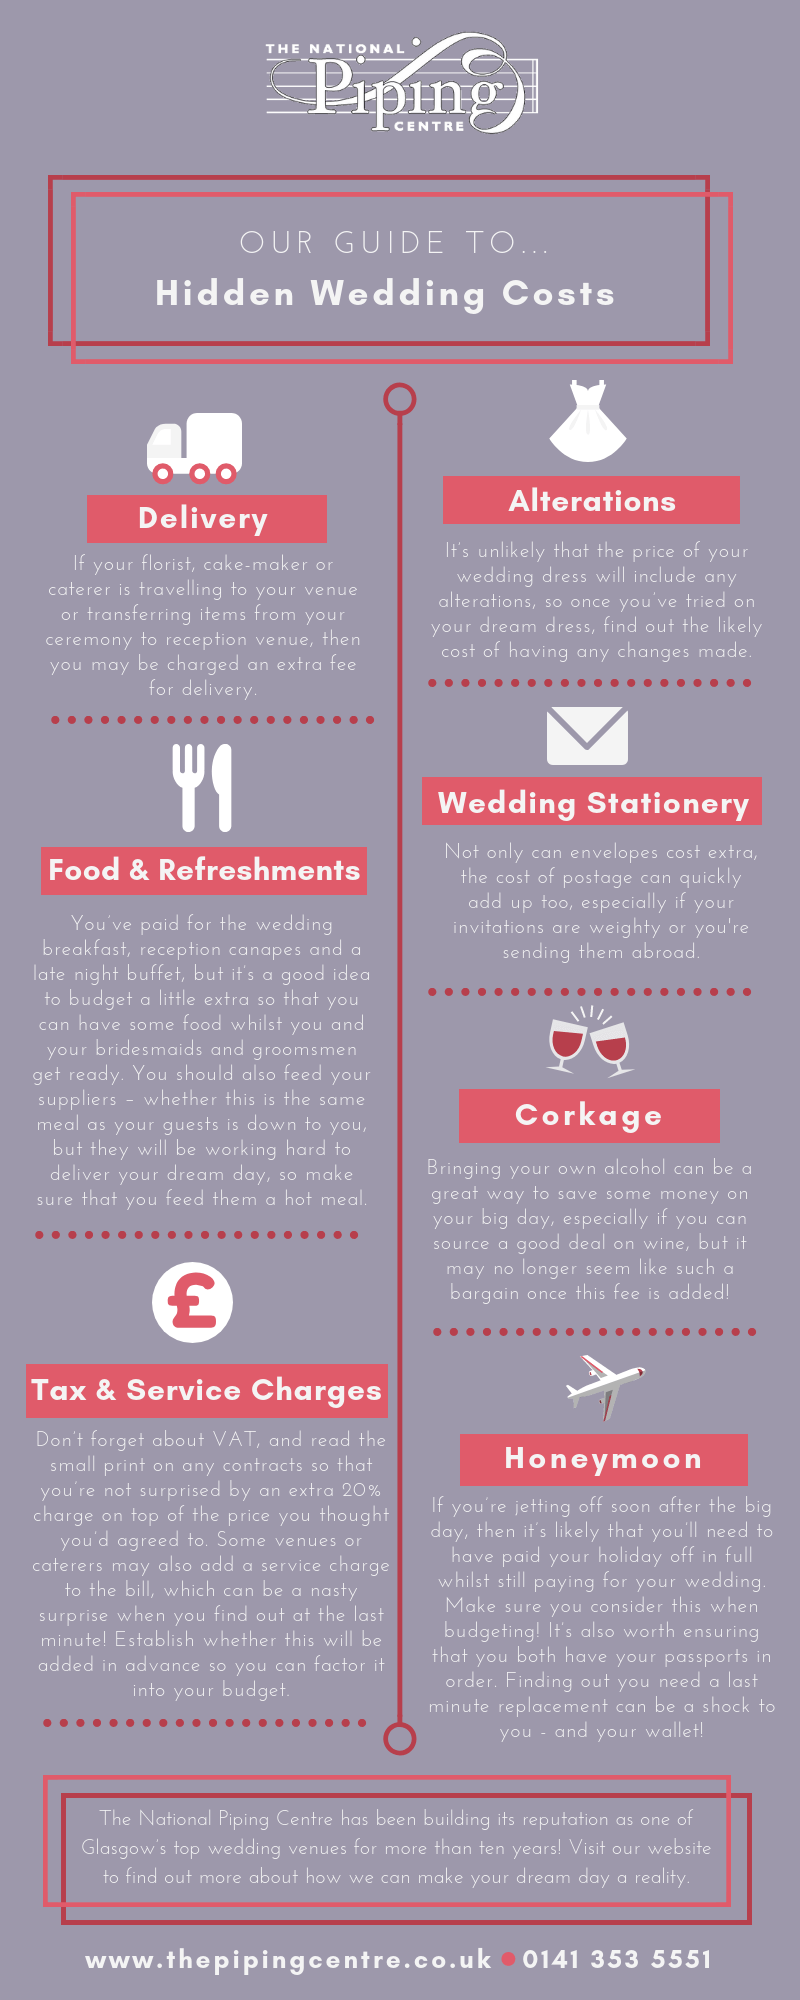 Our Guide To Hidden Wedding Costs The National Piping Centre